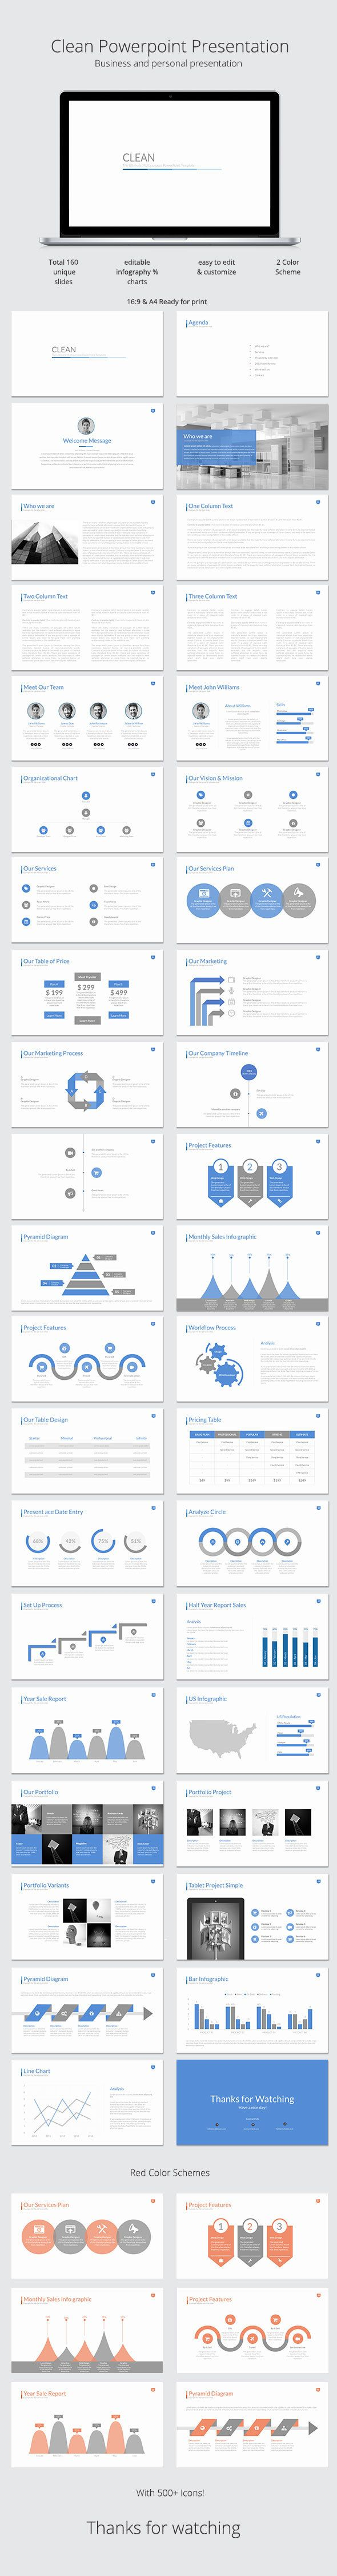 Coolmathgamesus  Pleasant  Ideas About Powerpoint Presentations On Pinterest With Marvelous Clean Powerpoint Template With Amusing Save Powerpoint As Movie Also How To Play Youtube Video In Powerpoint In Addition Create Powerpoint From Pdf And Annotated Bibliography Powerpoint As Well As Game Powerpoint Template Additionally Latest Powerpoint From Pinterestcom With Coolmathgamesus  Marvelous  Ideas About Powerpoint Presentations On Pinterest With Amusing Clean Powerpoint Template And Pleasant Save Powerpoint As Movie Also How To Play Youtube Video In Powerpoint In Addition Create Powerpoint From Pdf From Pinterestcom